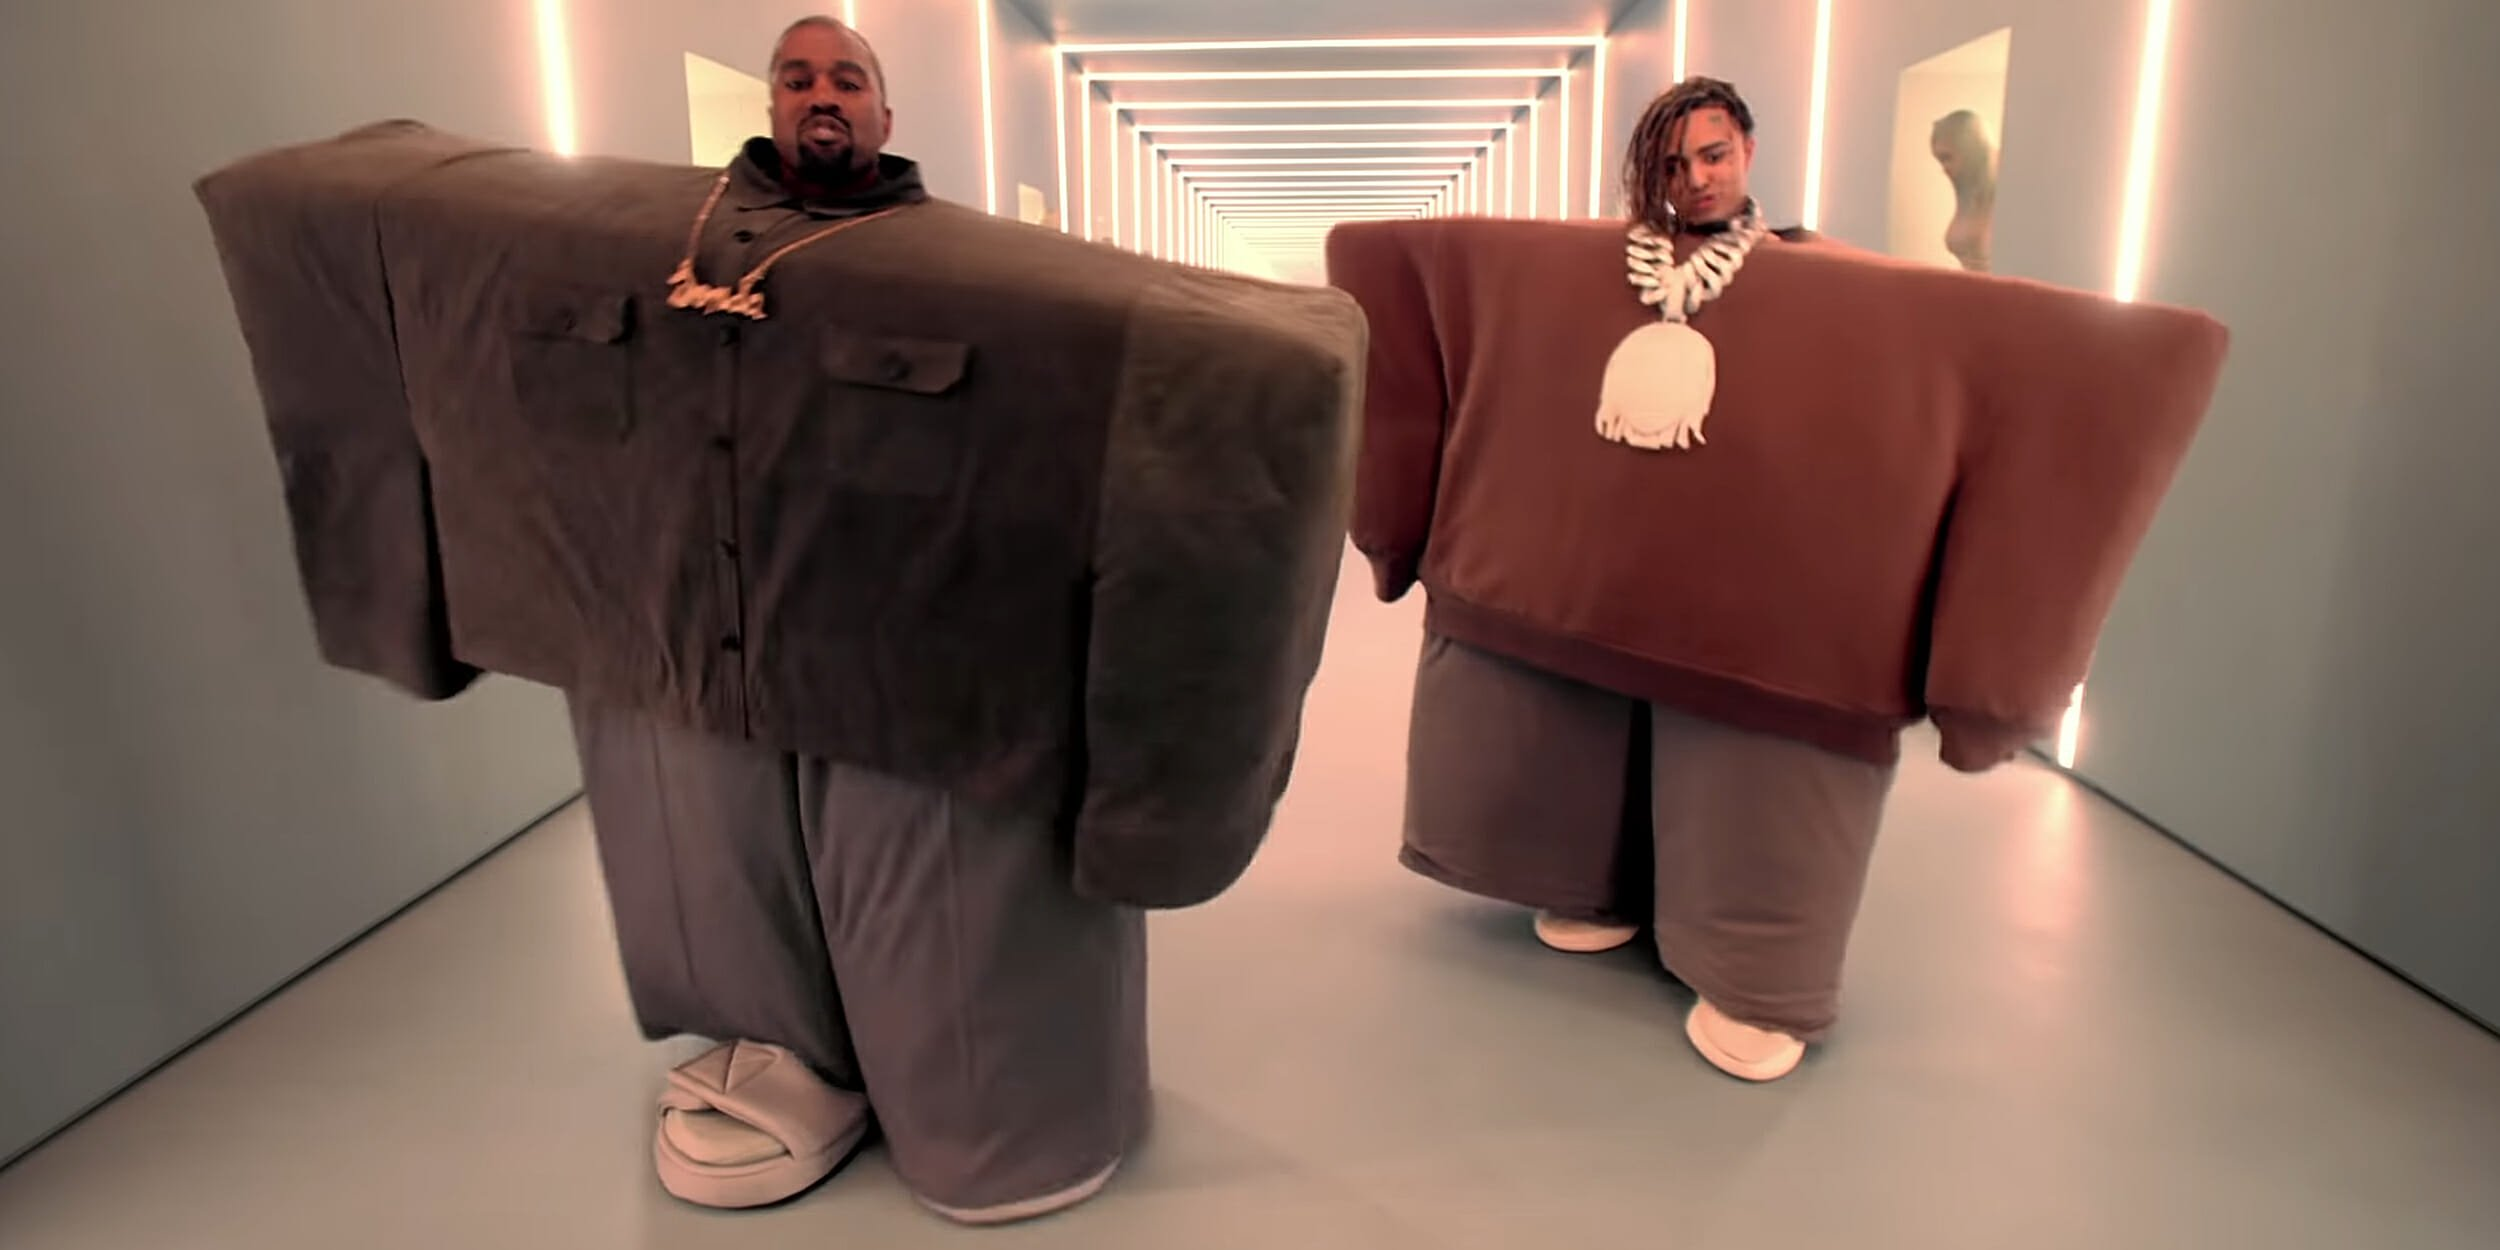 Need An Outfit For Halloween? Check Out Kanye West\u0027s Roblox,Inspired Costume